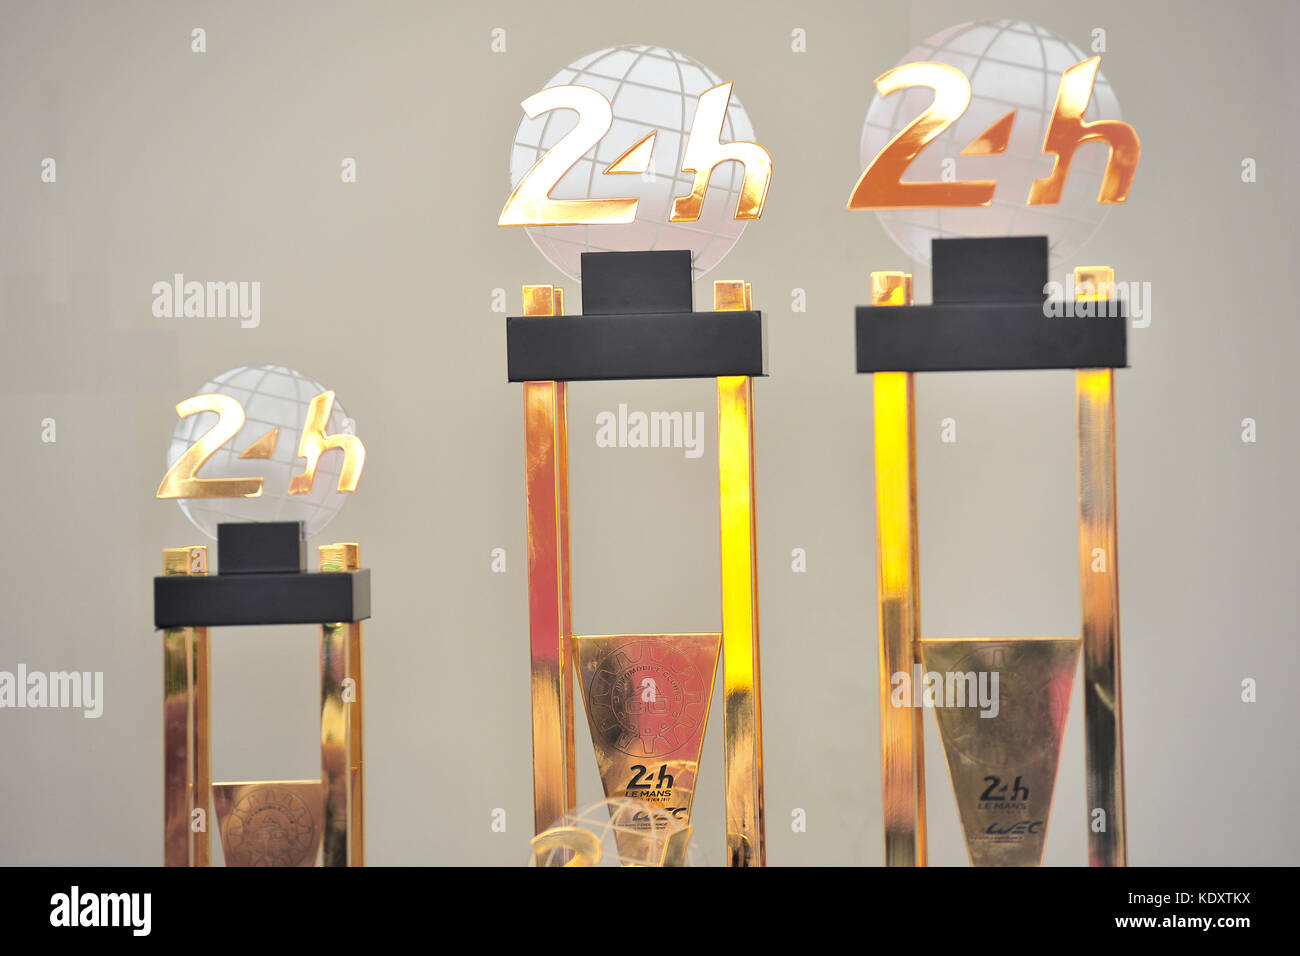 The 2017 Le Mans winners trophies on display at the Goodwood Festival of Speed. - Stock Image